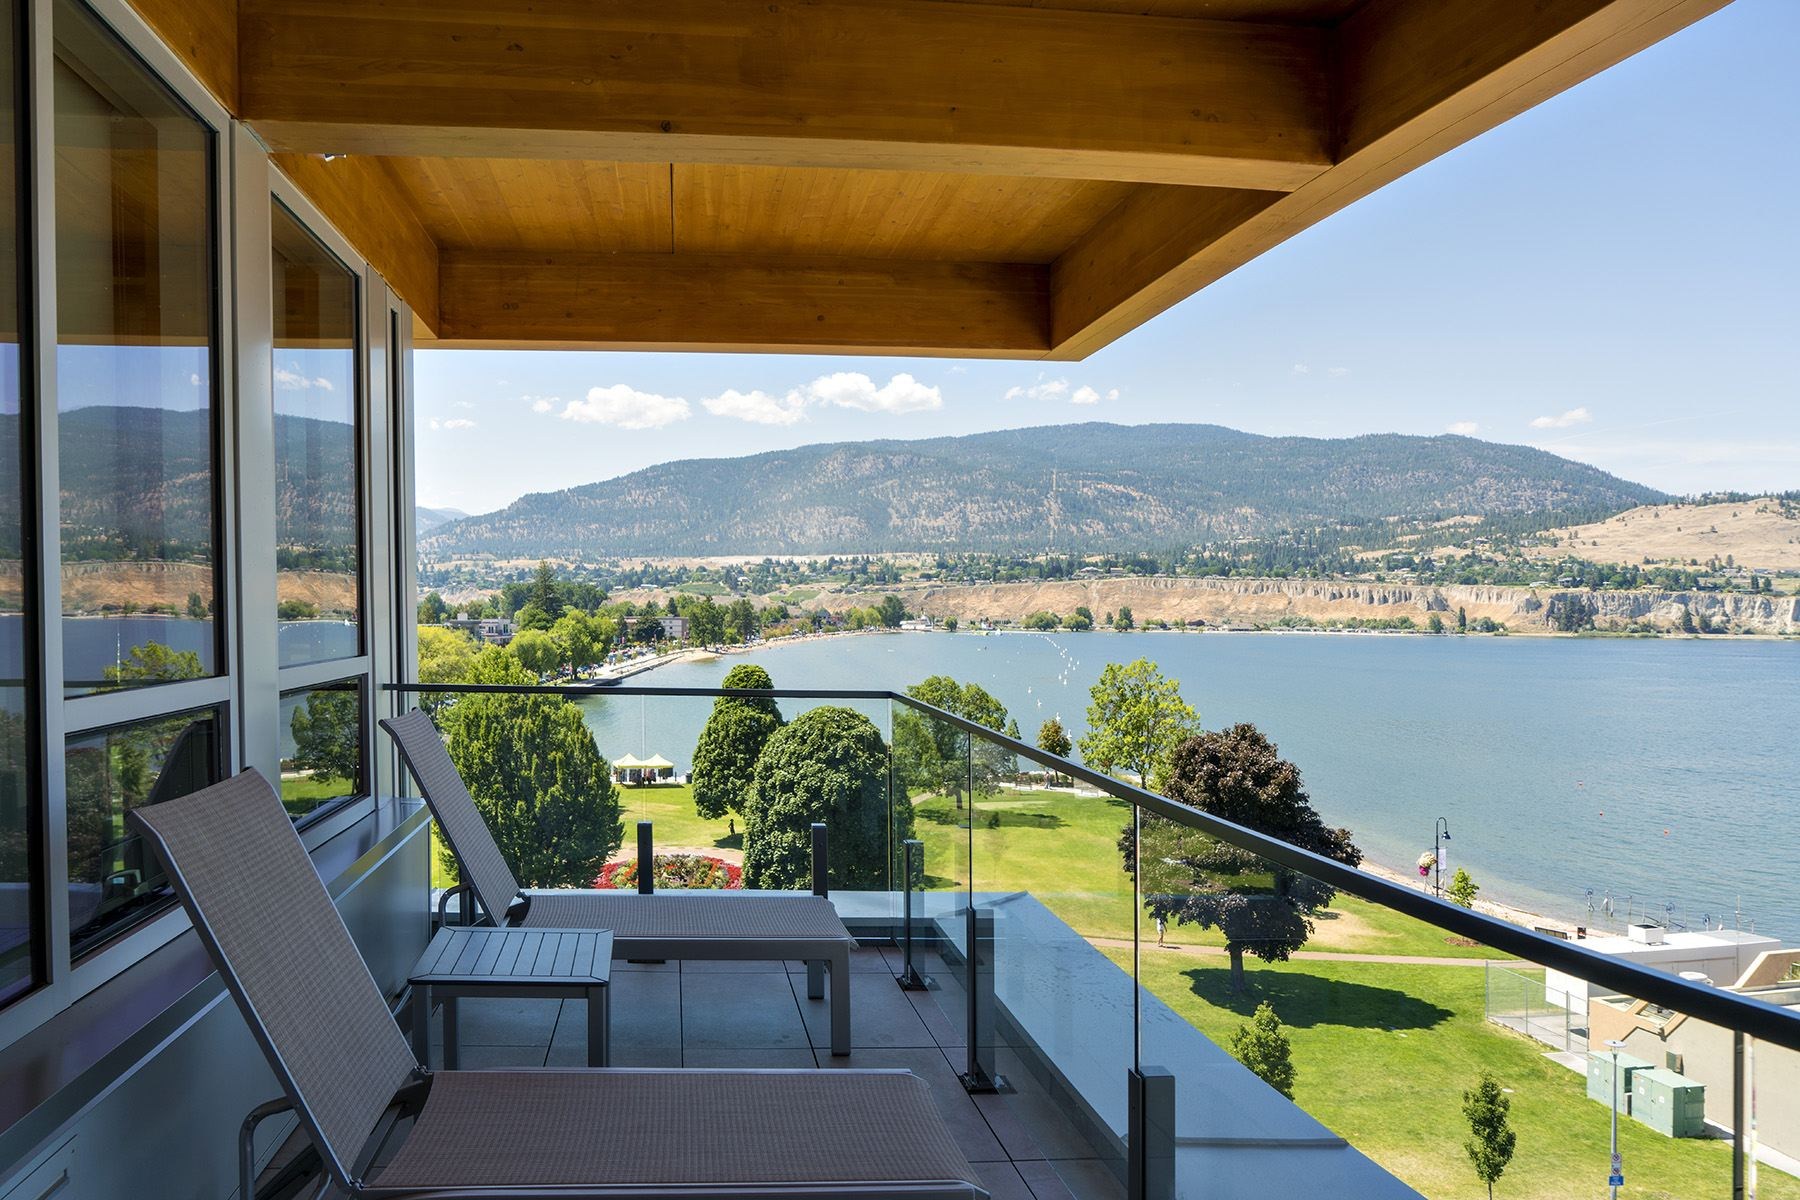 Penticton Lakeside Resort